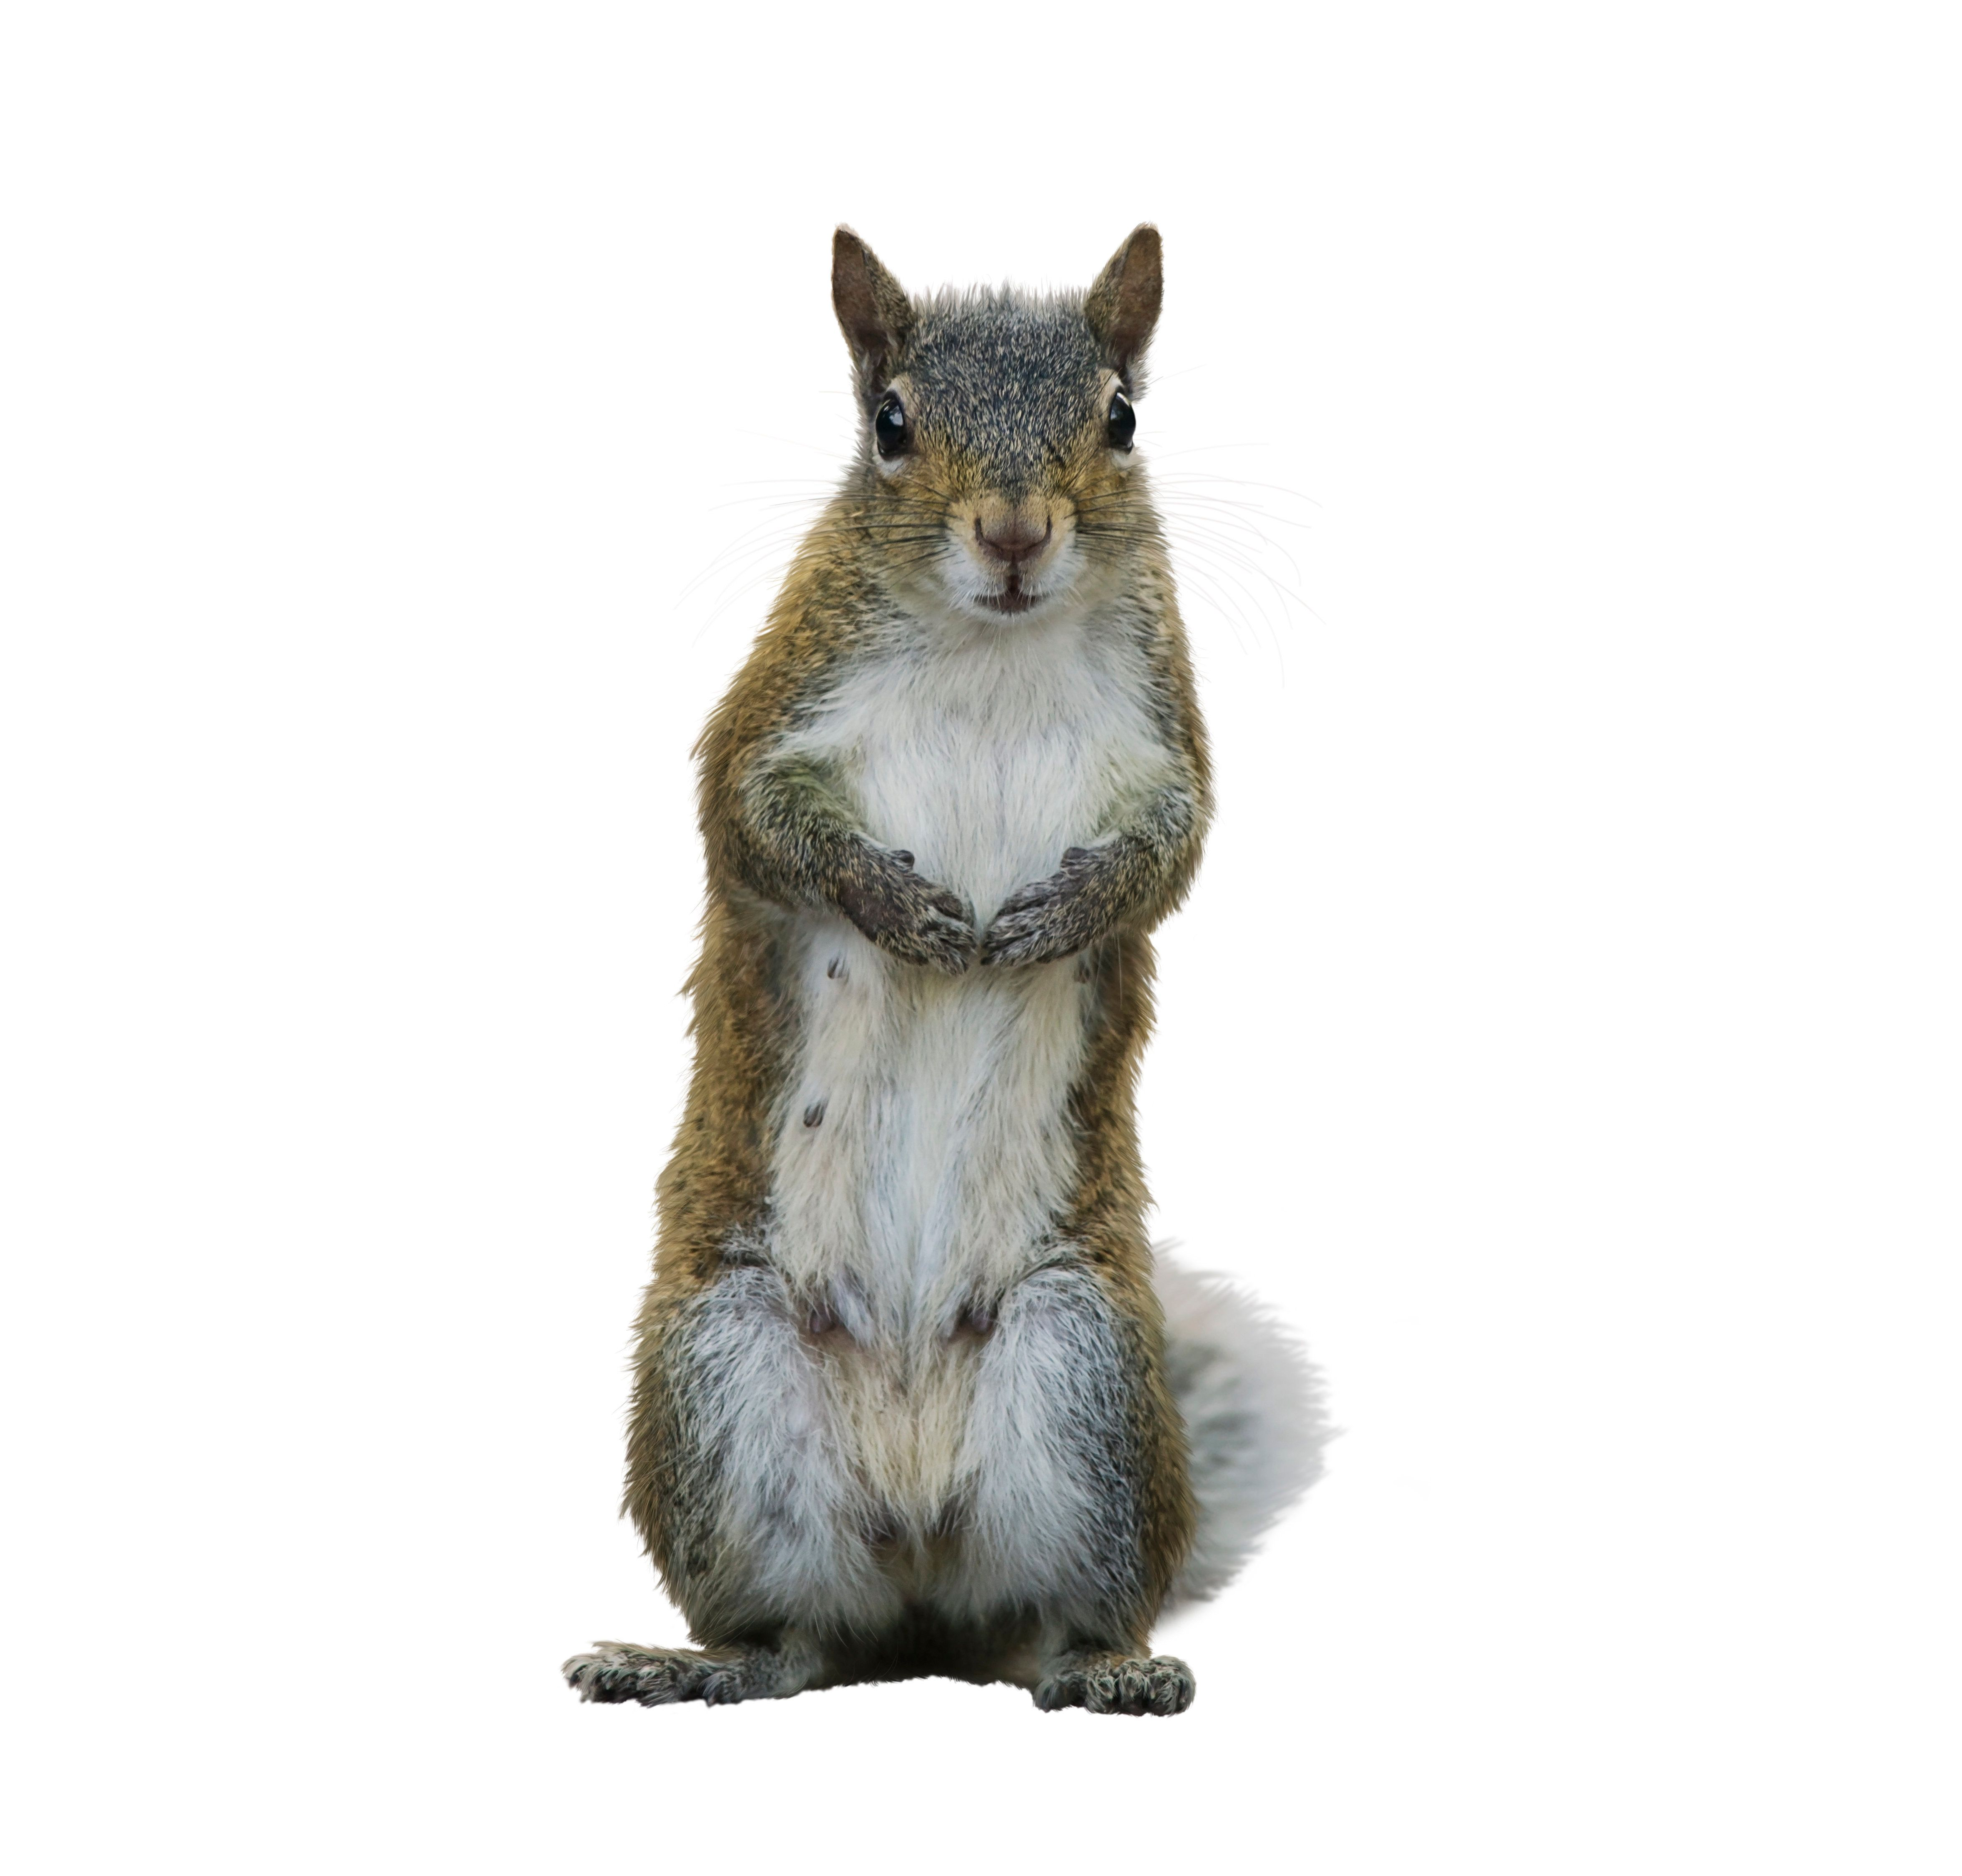 The woman told the airline that she was bringing an emotional support animal but did not indicate that it was a squirrel, acc